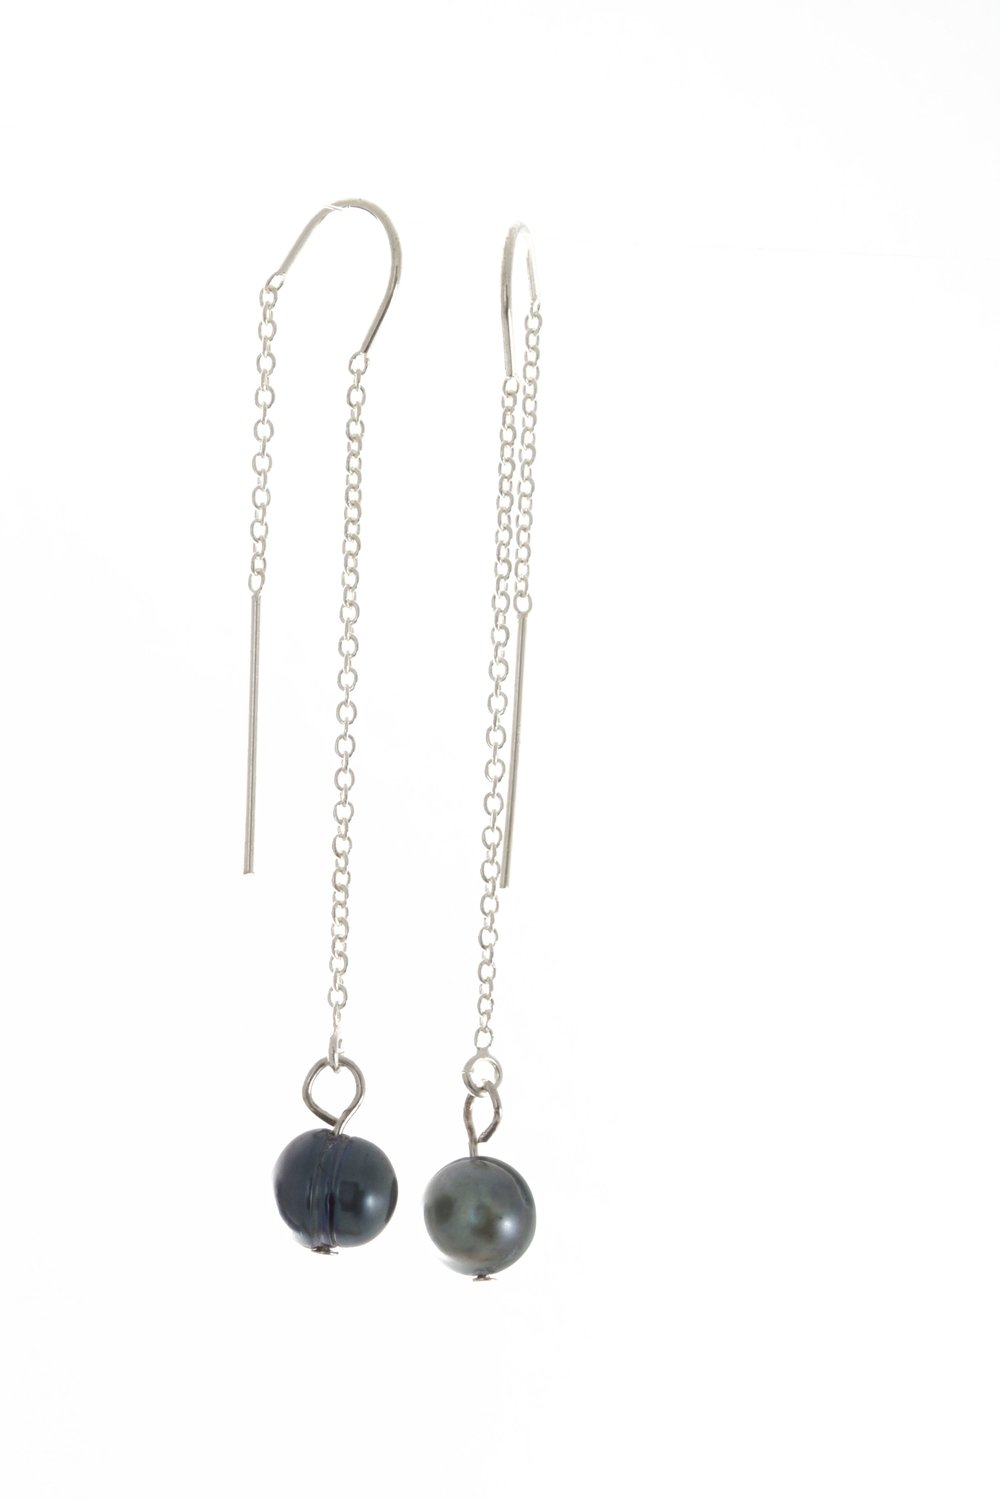 Blue baroque pearl earrings sterling silver ear wires.